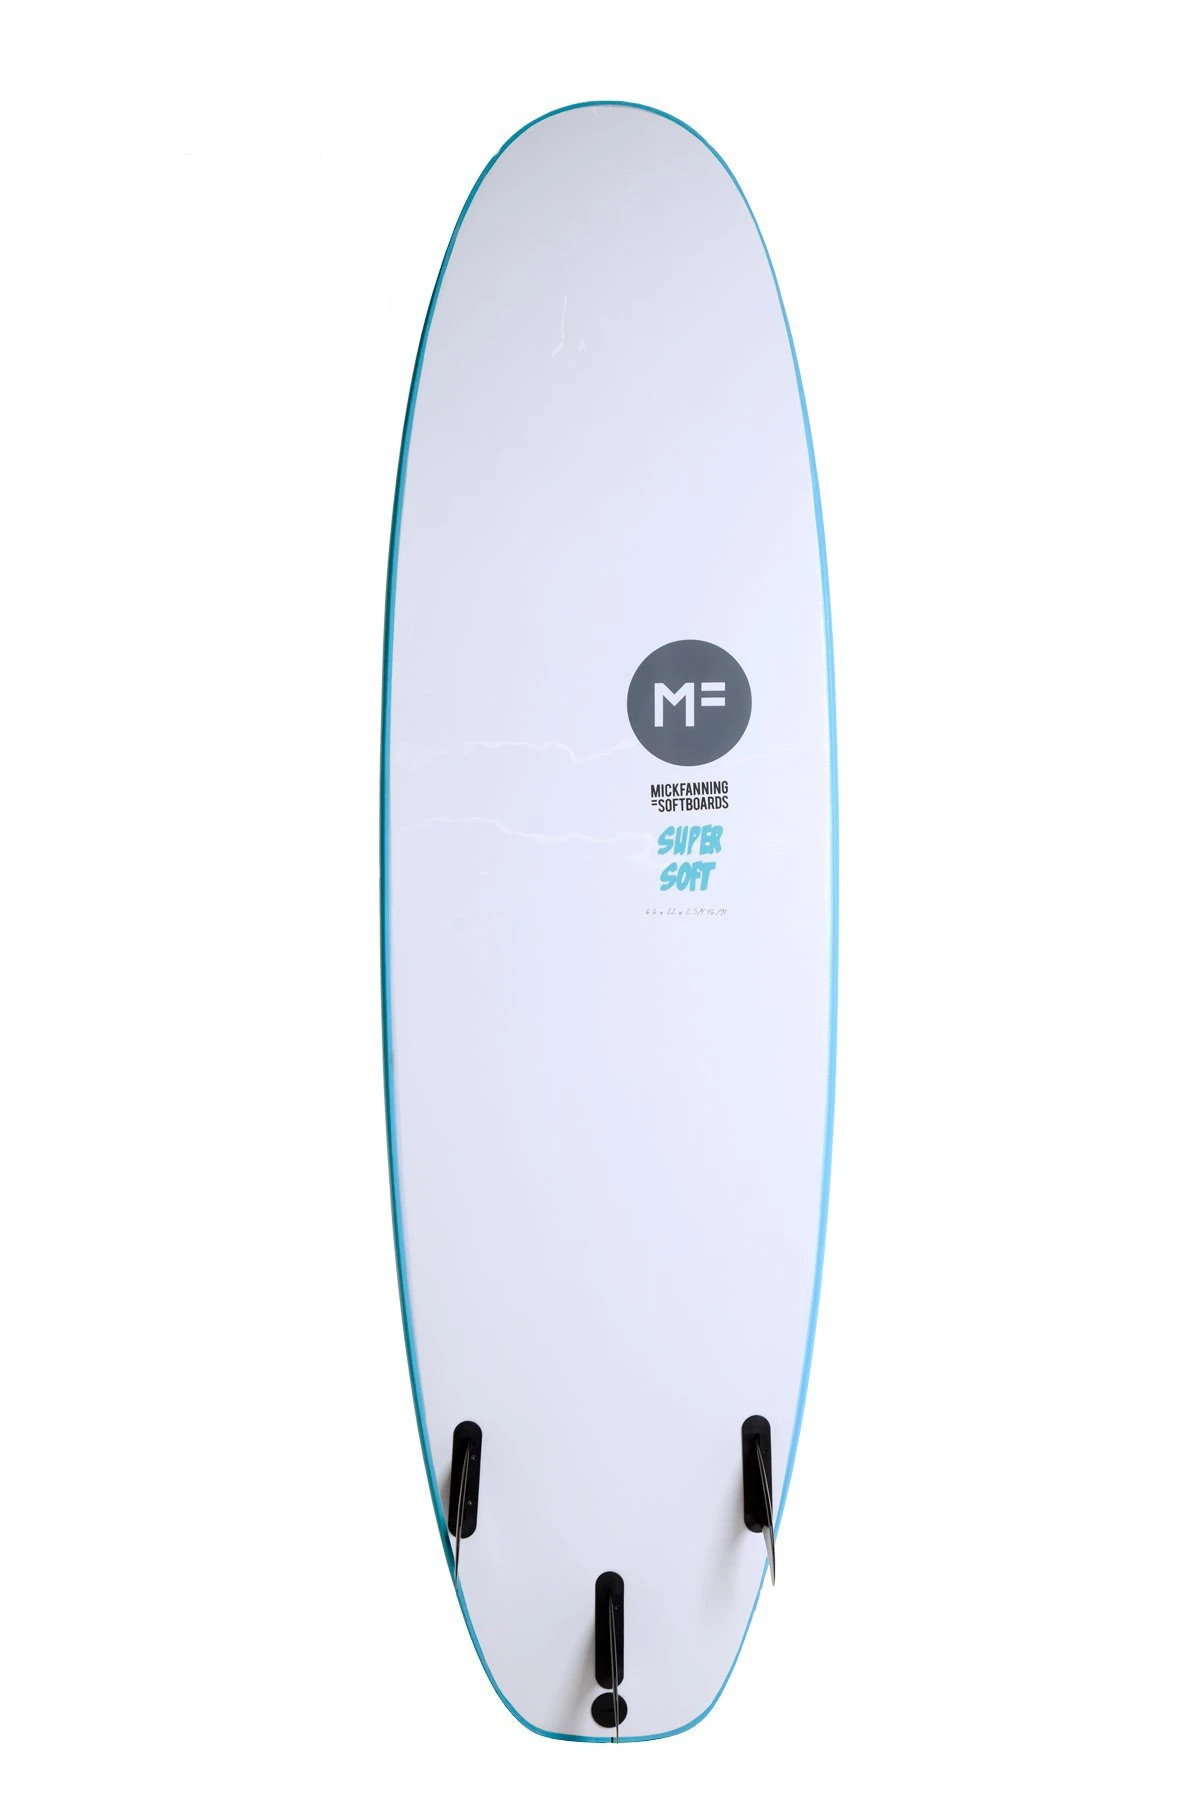 Soft top beginner surfboards